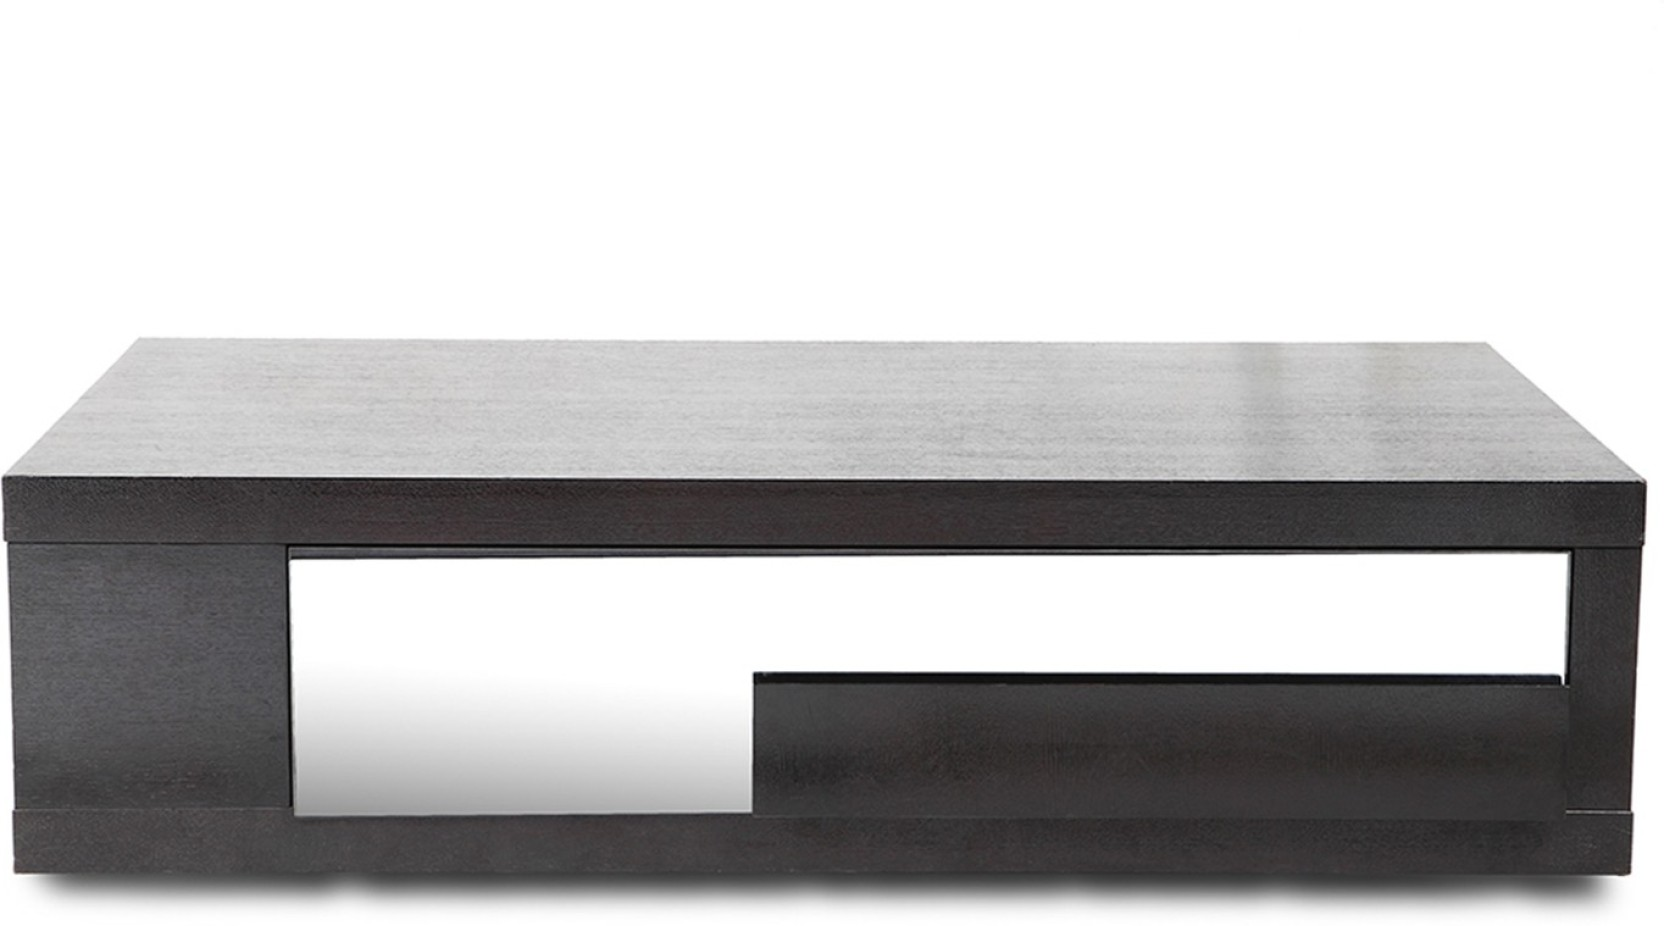 Hometown alfe center engineered wood coffee table finish color wenge